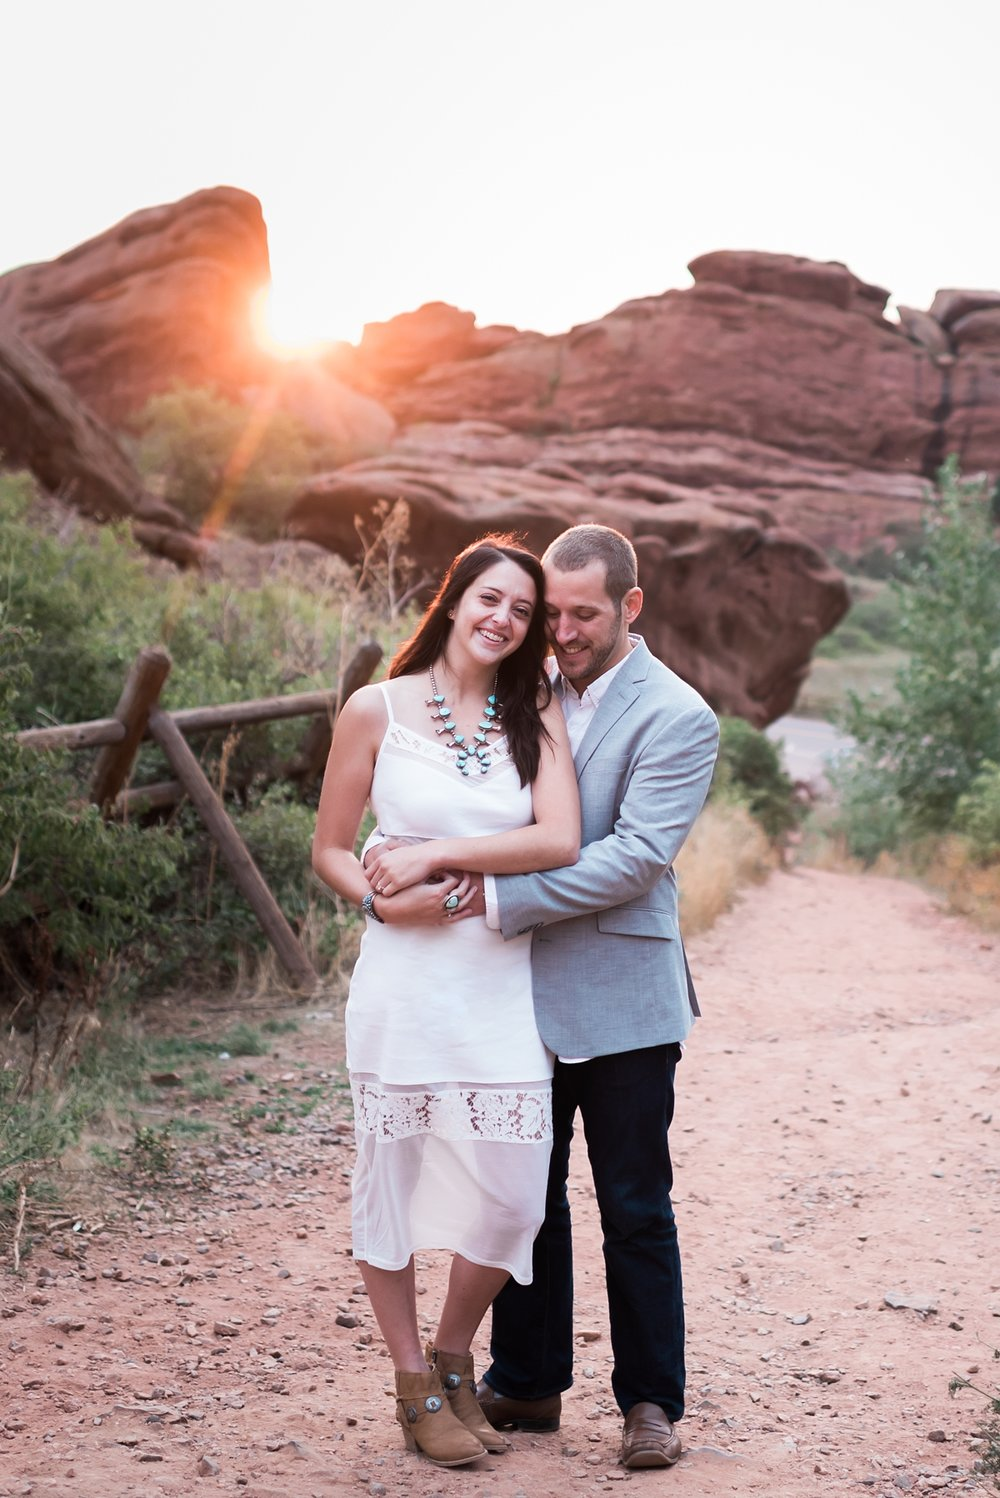 I helped out fellow photographer, Rayna McGinnis, and shot a sunrise engagement session for at Red Rocks. This couple and the light had me swooning all morning!